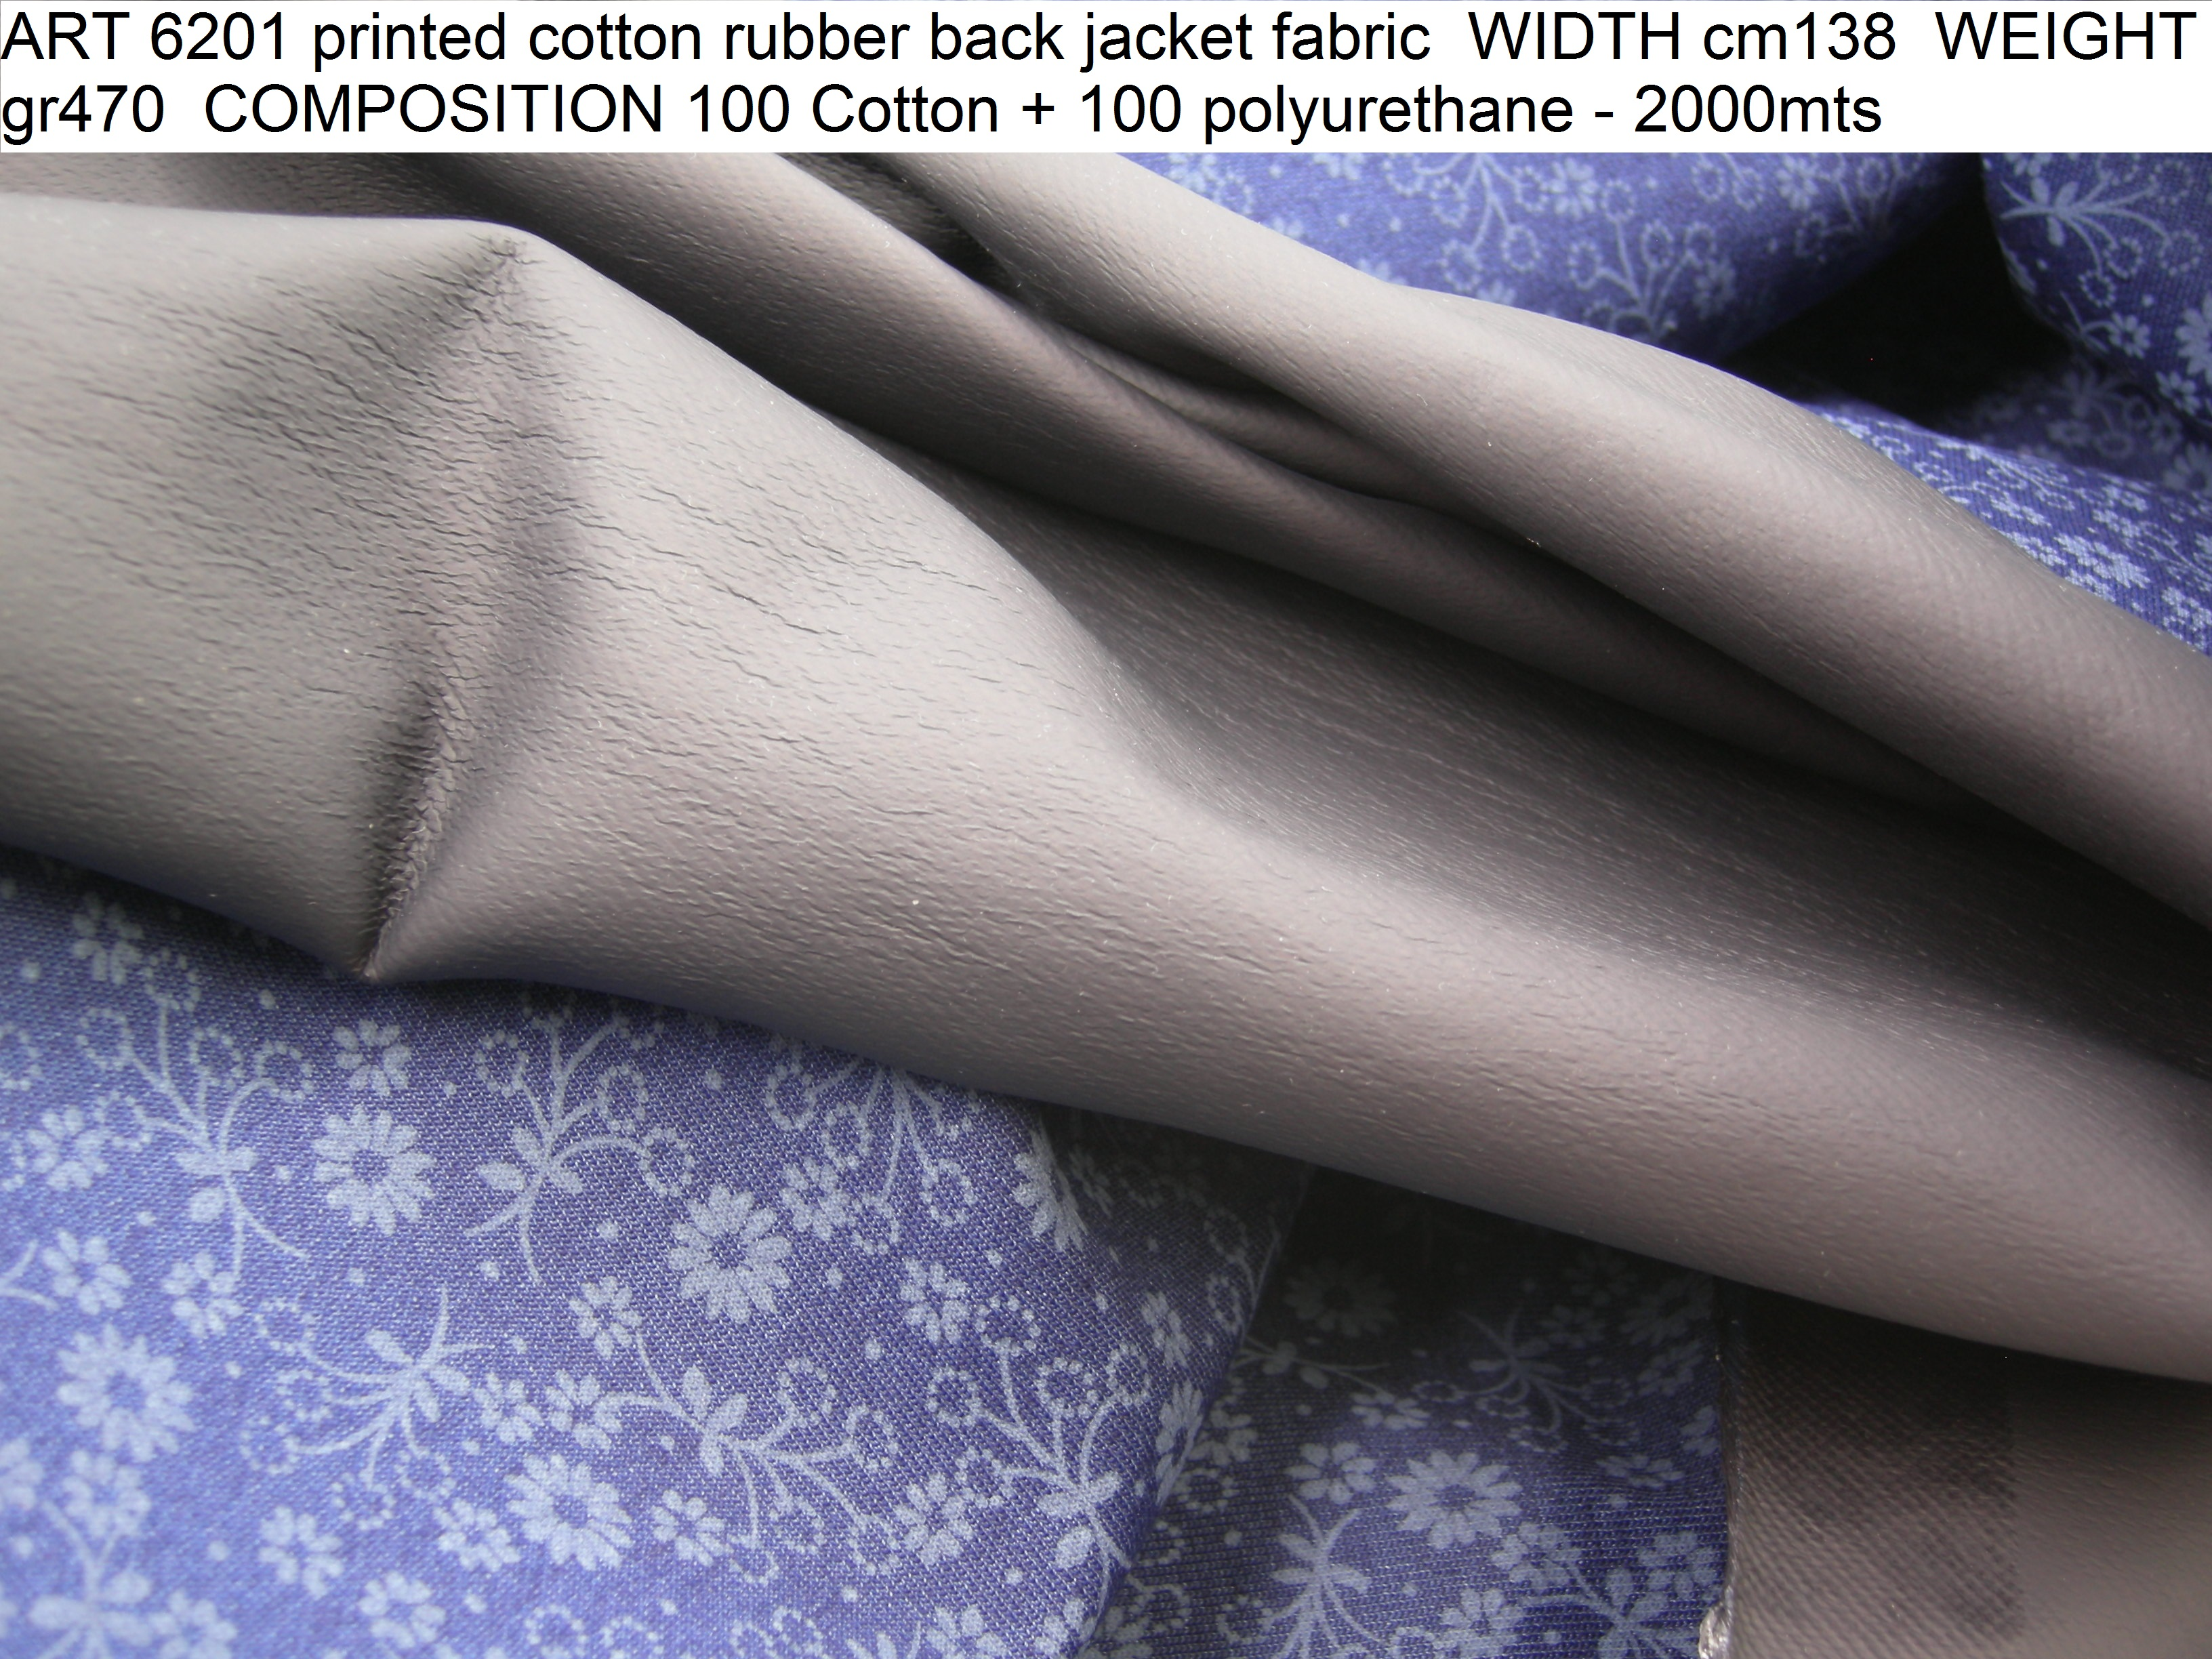 ART 6201 printed cotton rubber back jacket fabric WIDTH cm138 WEIGHT gr470 COMPOSITION 100 Cotton + 100 polyurethane - 2000mts